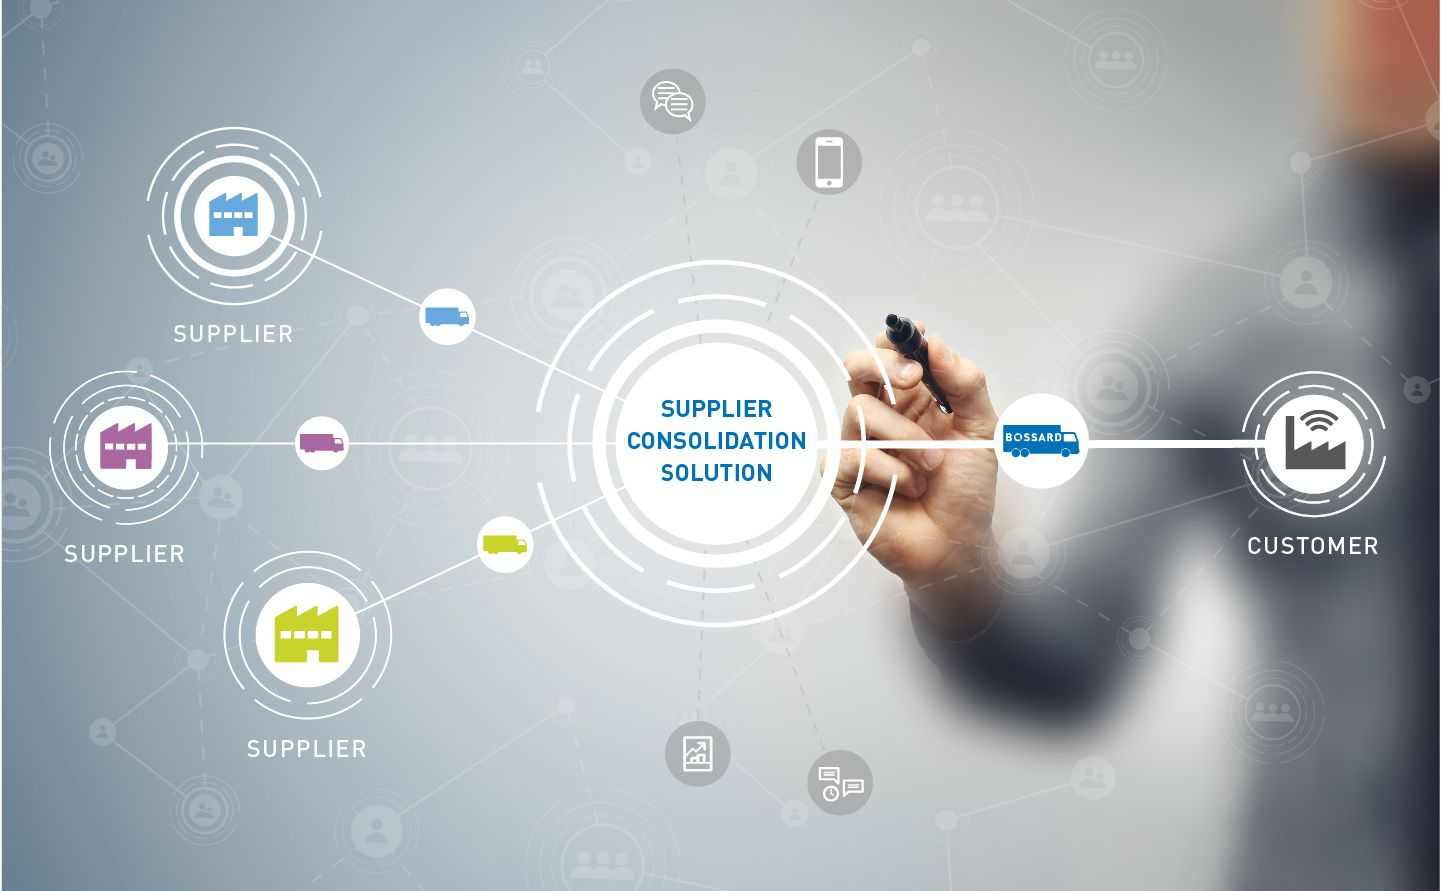 Supplier Consolidation Solution